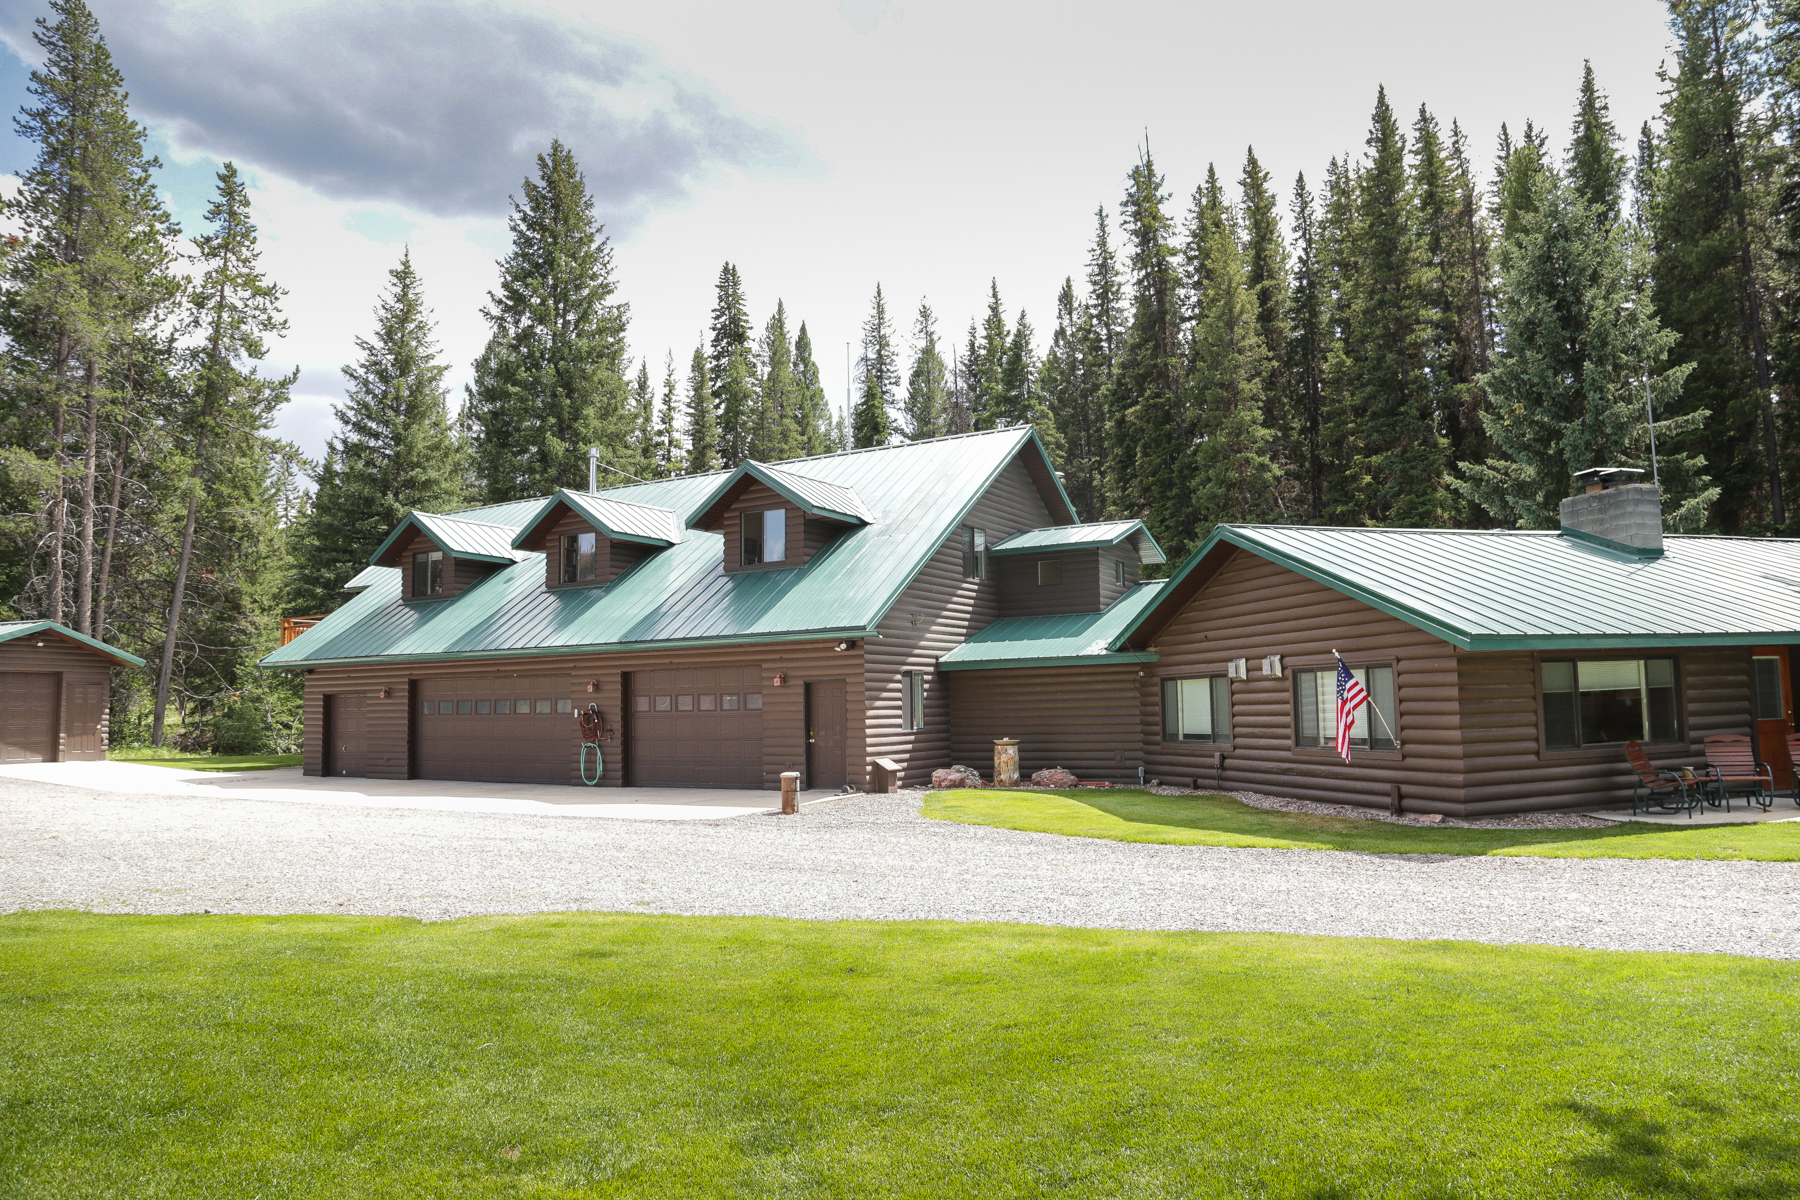 Single Family Home for Sale at 5730 MT Highway 279 Lincoln, Montana 59639 United States